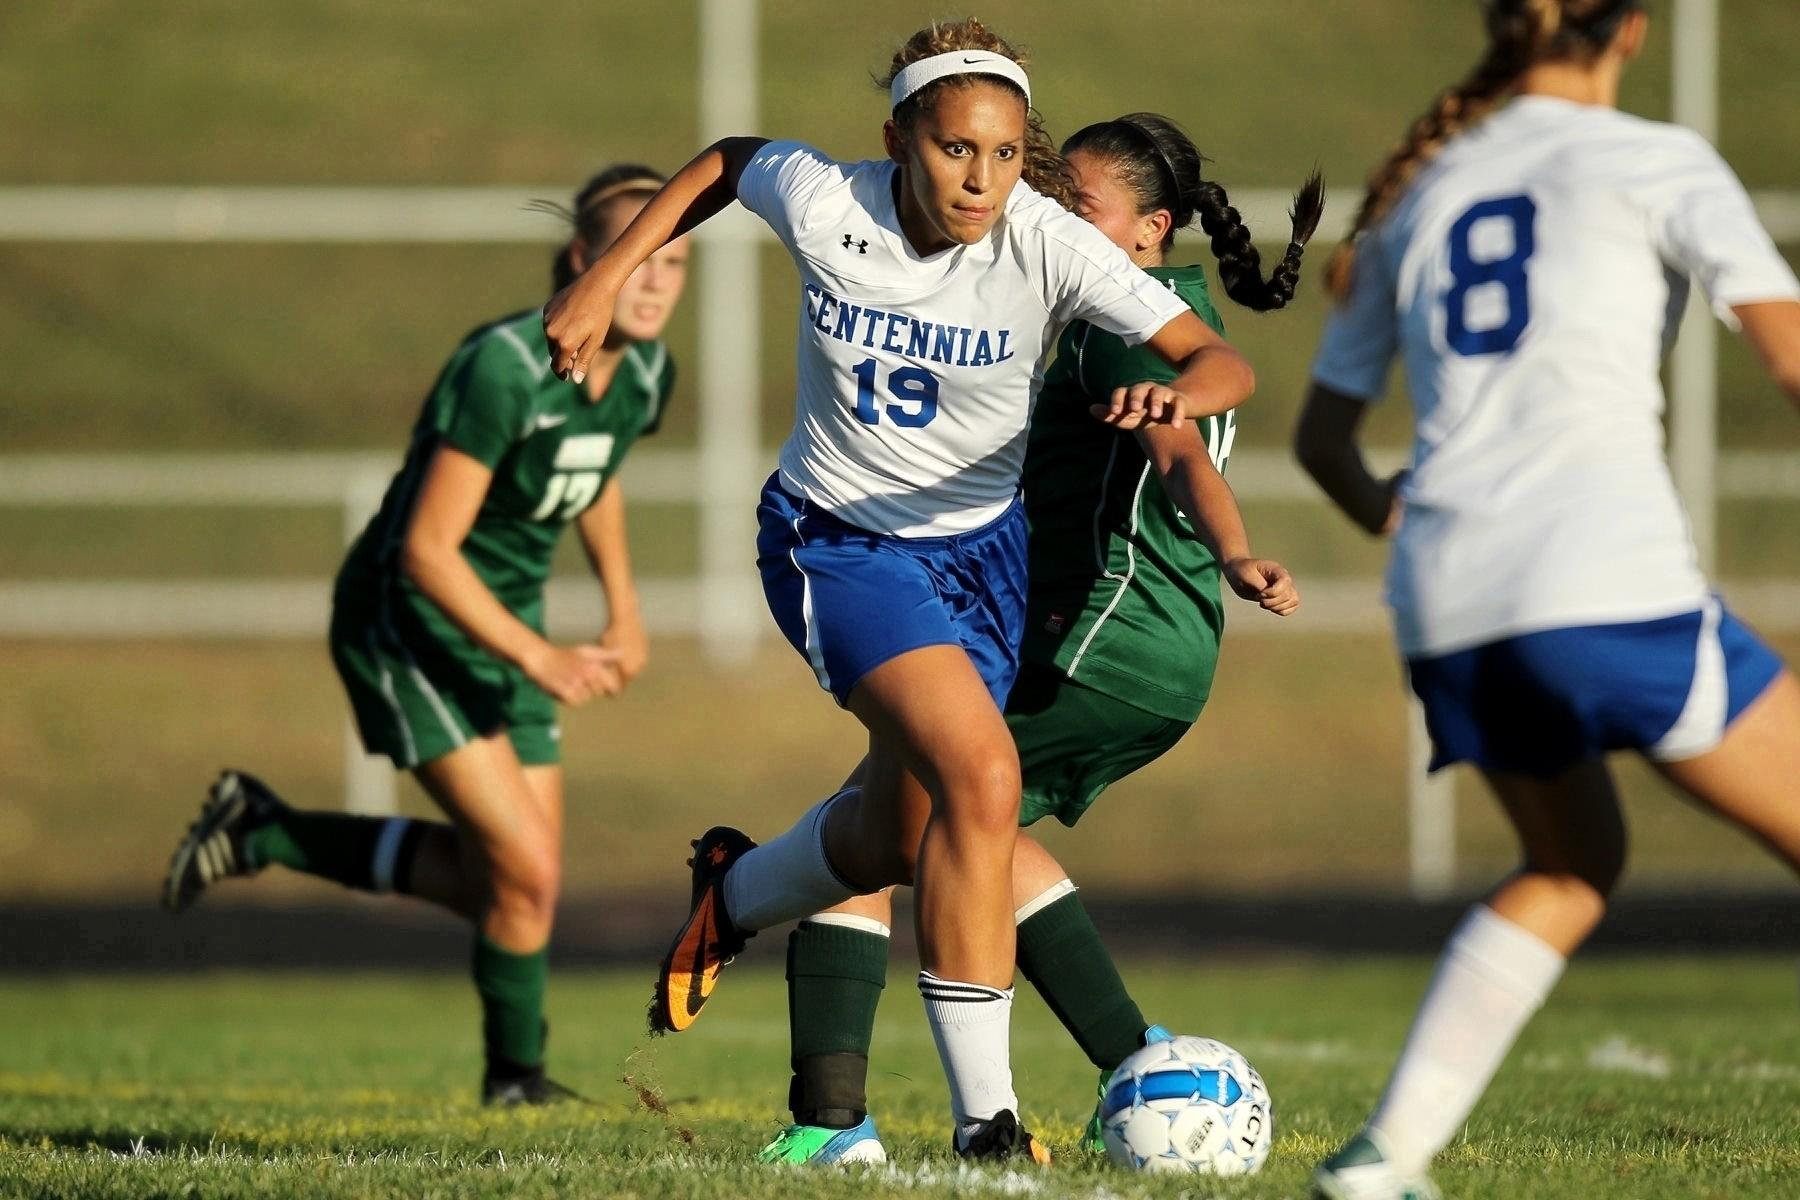 Centennial's Anna Mitchell dribbles the ball during the girls soccer game against Atholton.